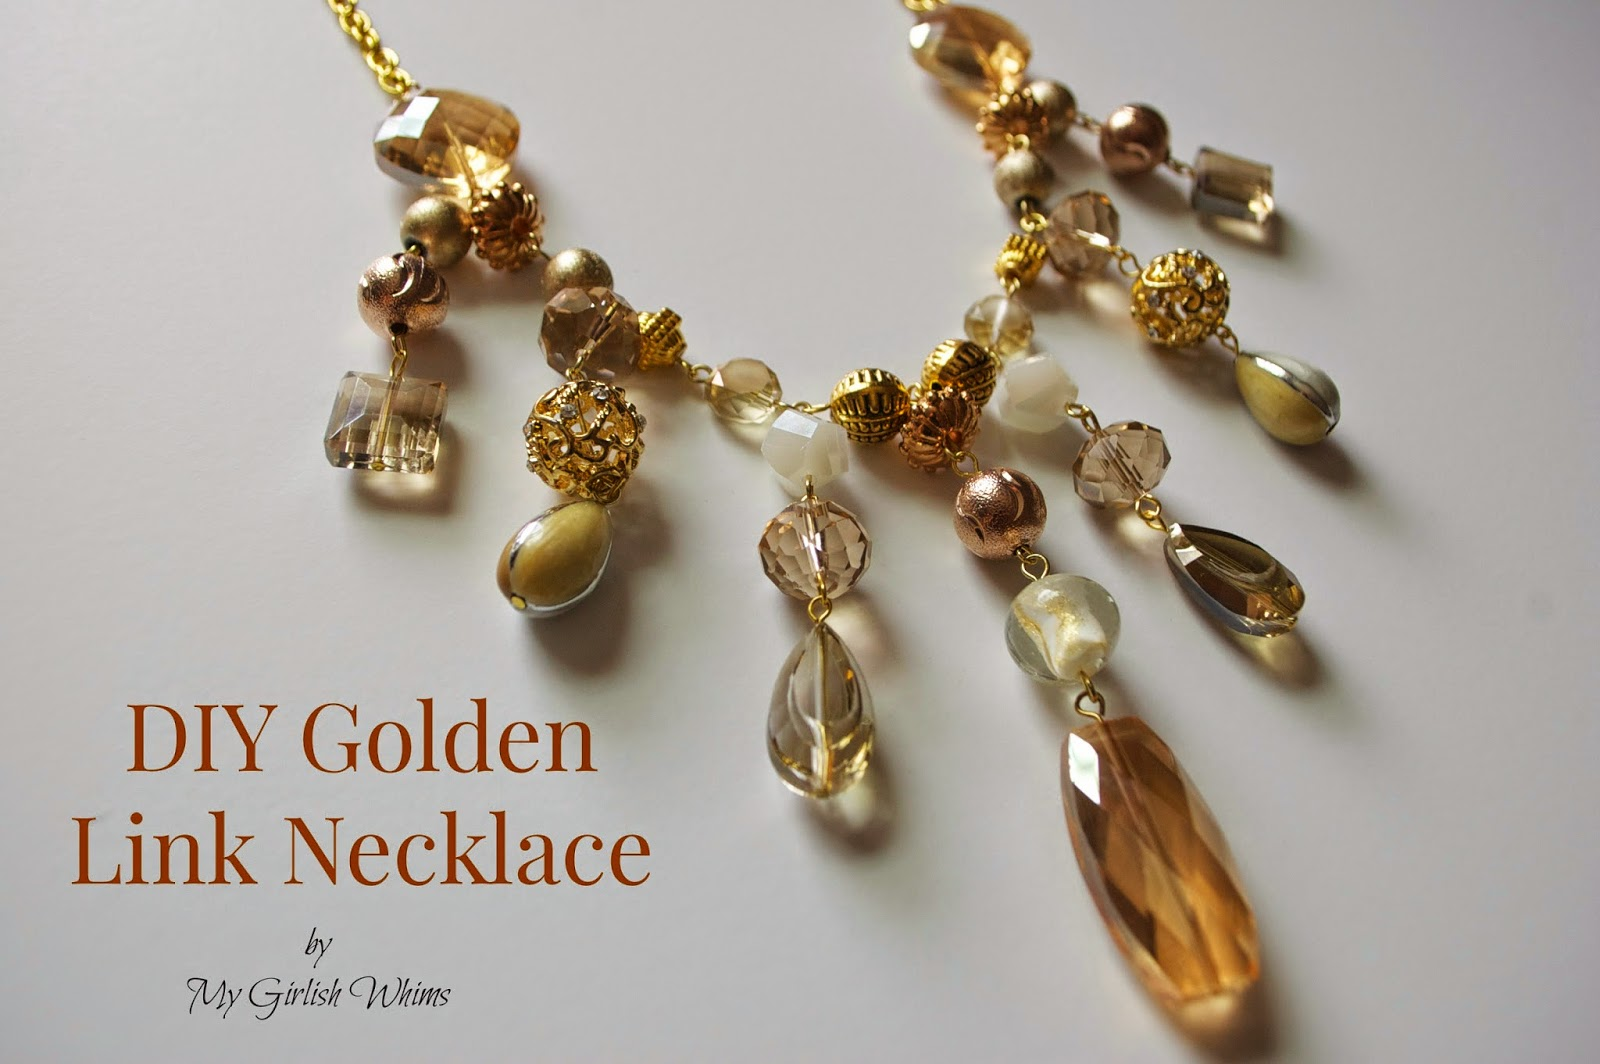 DIY Golden Link Necklace with Jesse James Beads - My Girlish Whims